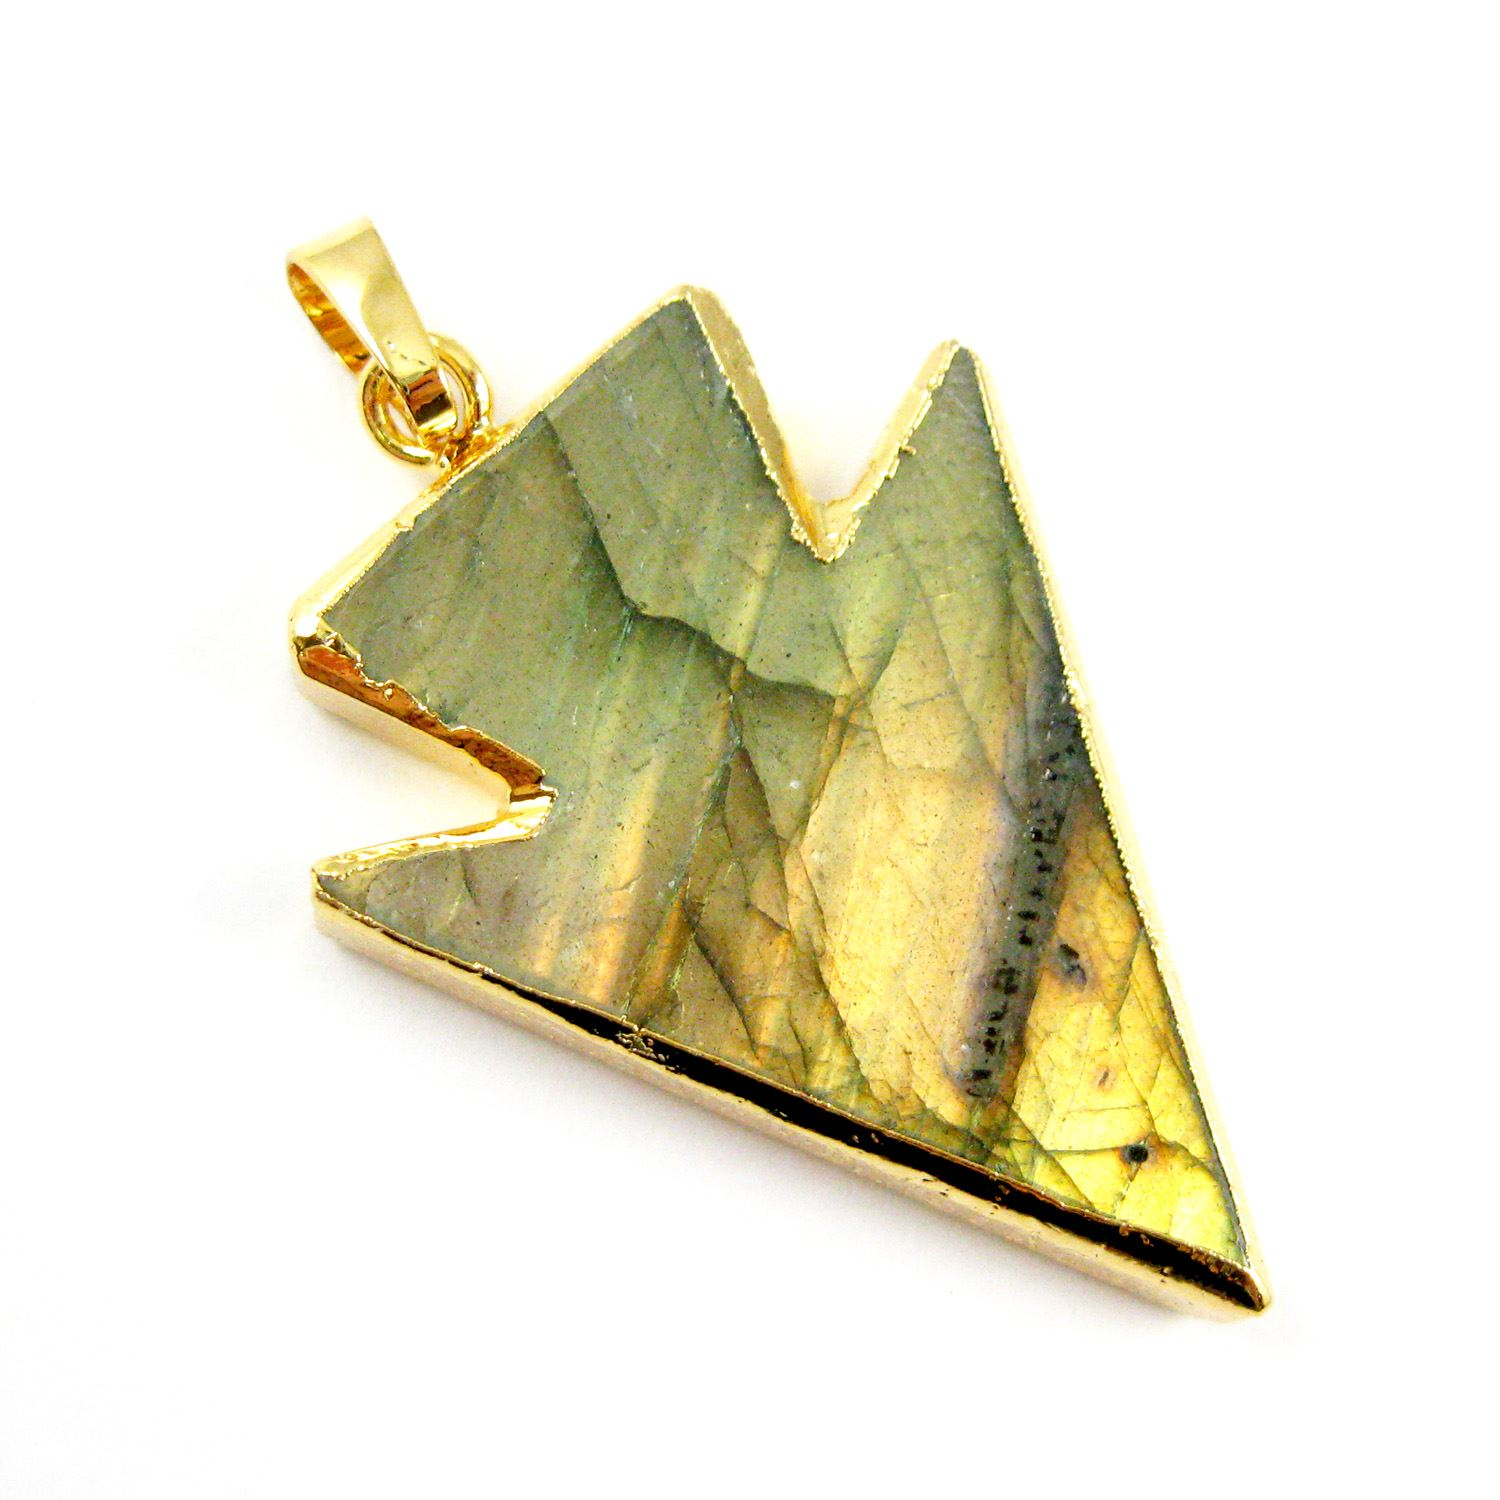 Labradorite Arrowhead Spike Pendant Necklace -Laradorite and Gold Necklace - Gold plated Sterling Silver Beaded Necklace Chain